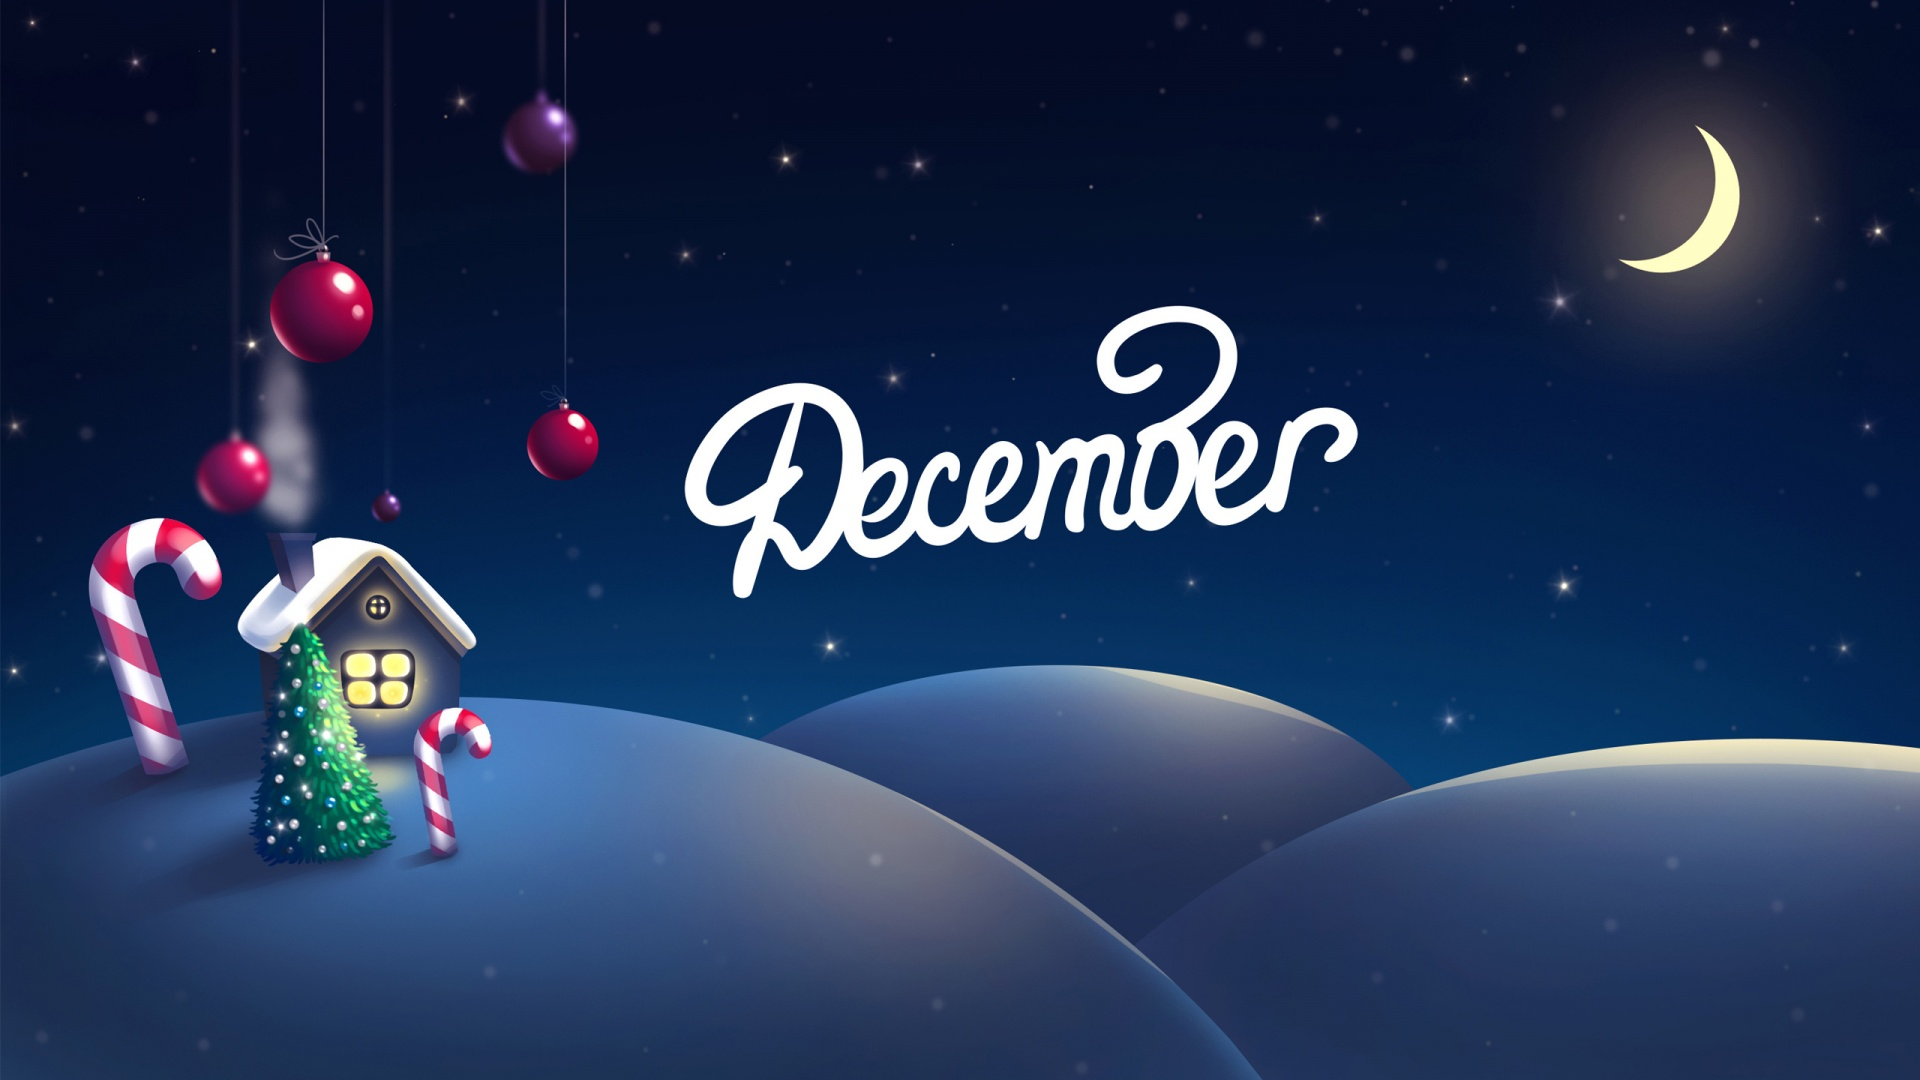 merry christmas wallpapers month